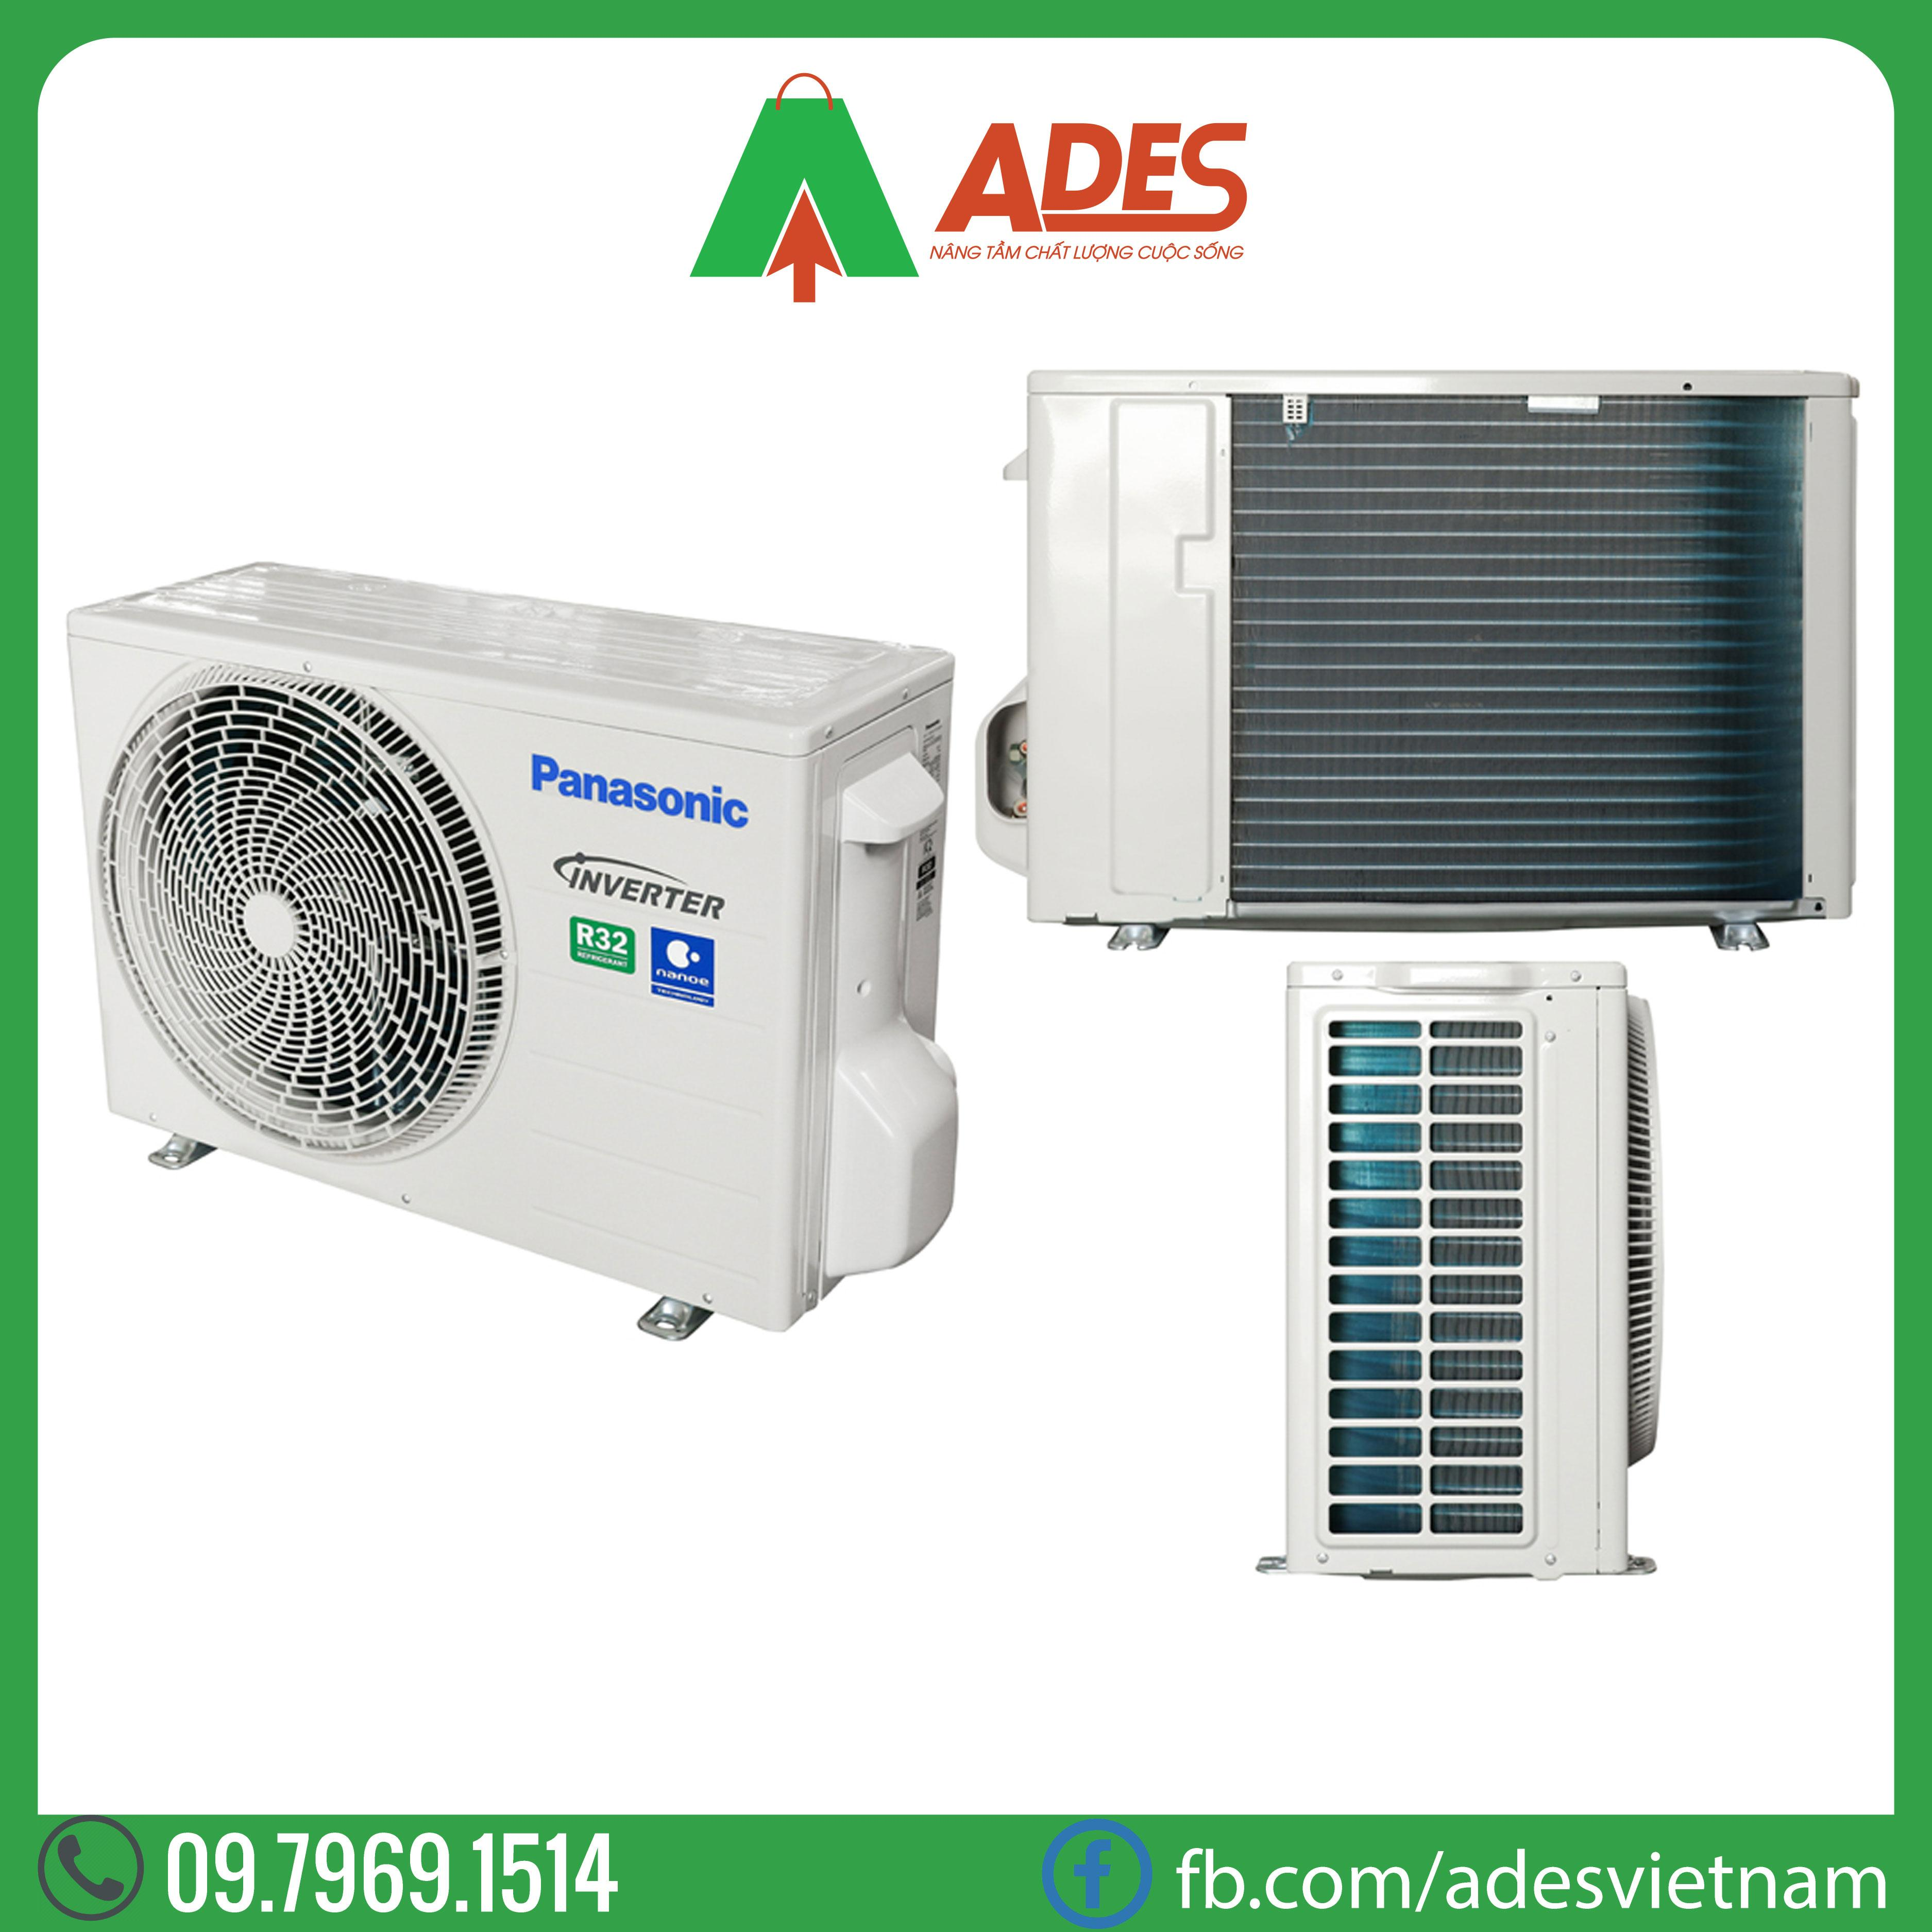 Dieu hoa 2 chieu Inverter Panasonic CU/CS-YZ9UKH-8